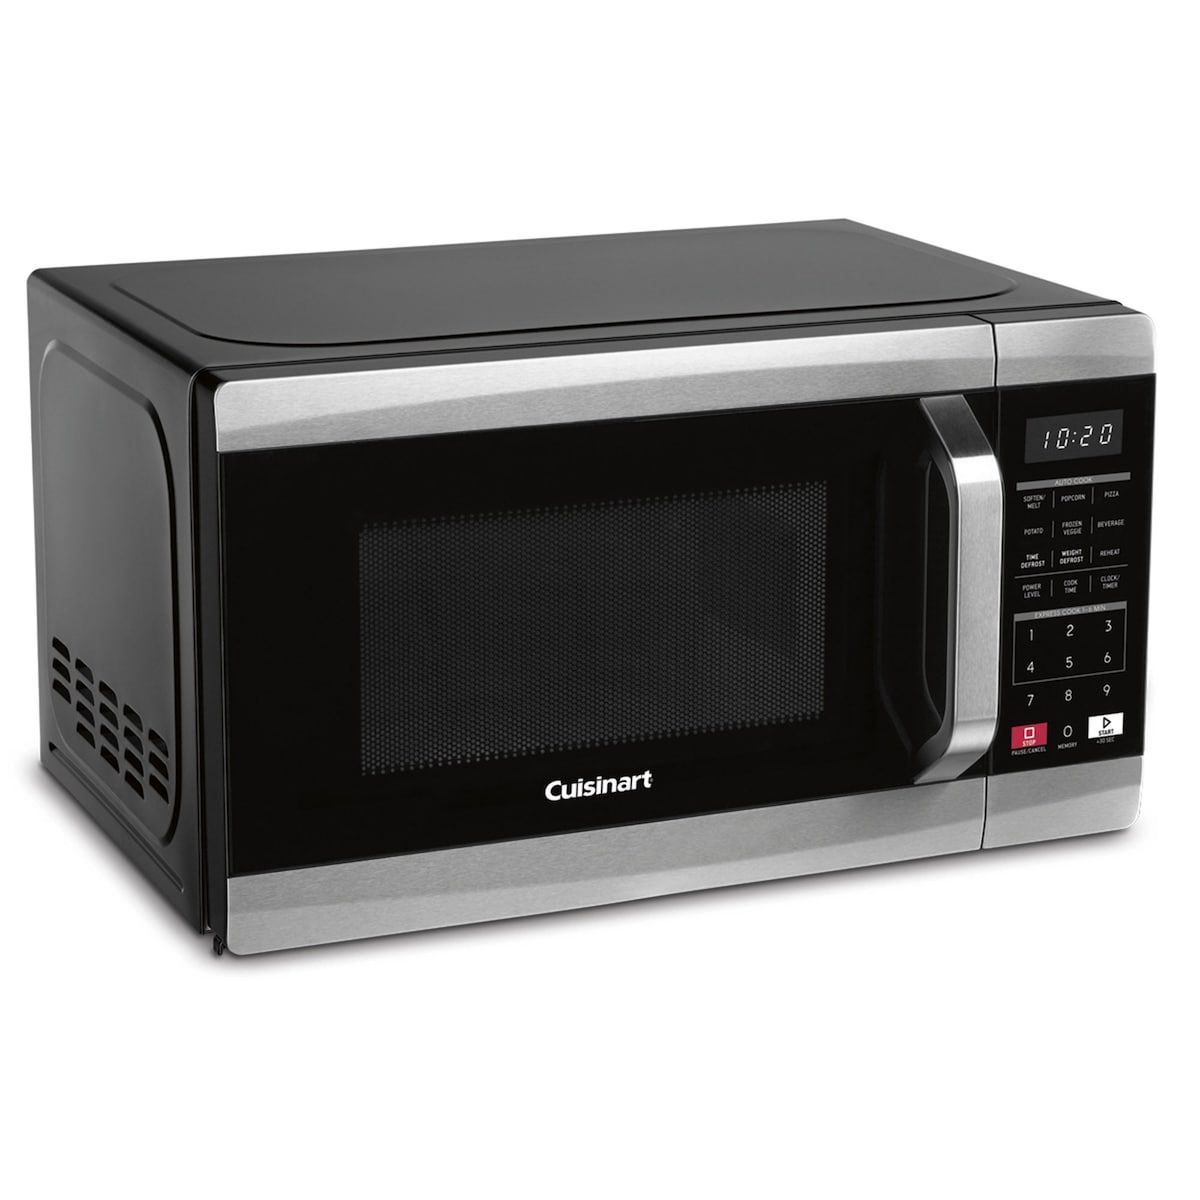 Cuisinart Compact Microwave Oven Compact Microwave Oven Compact